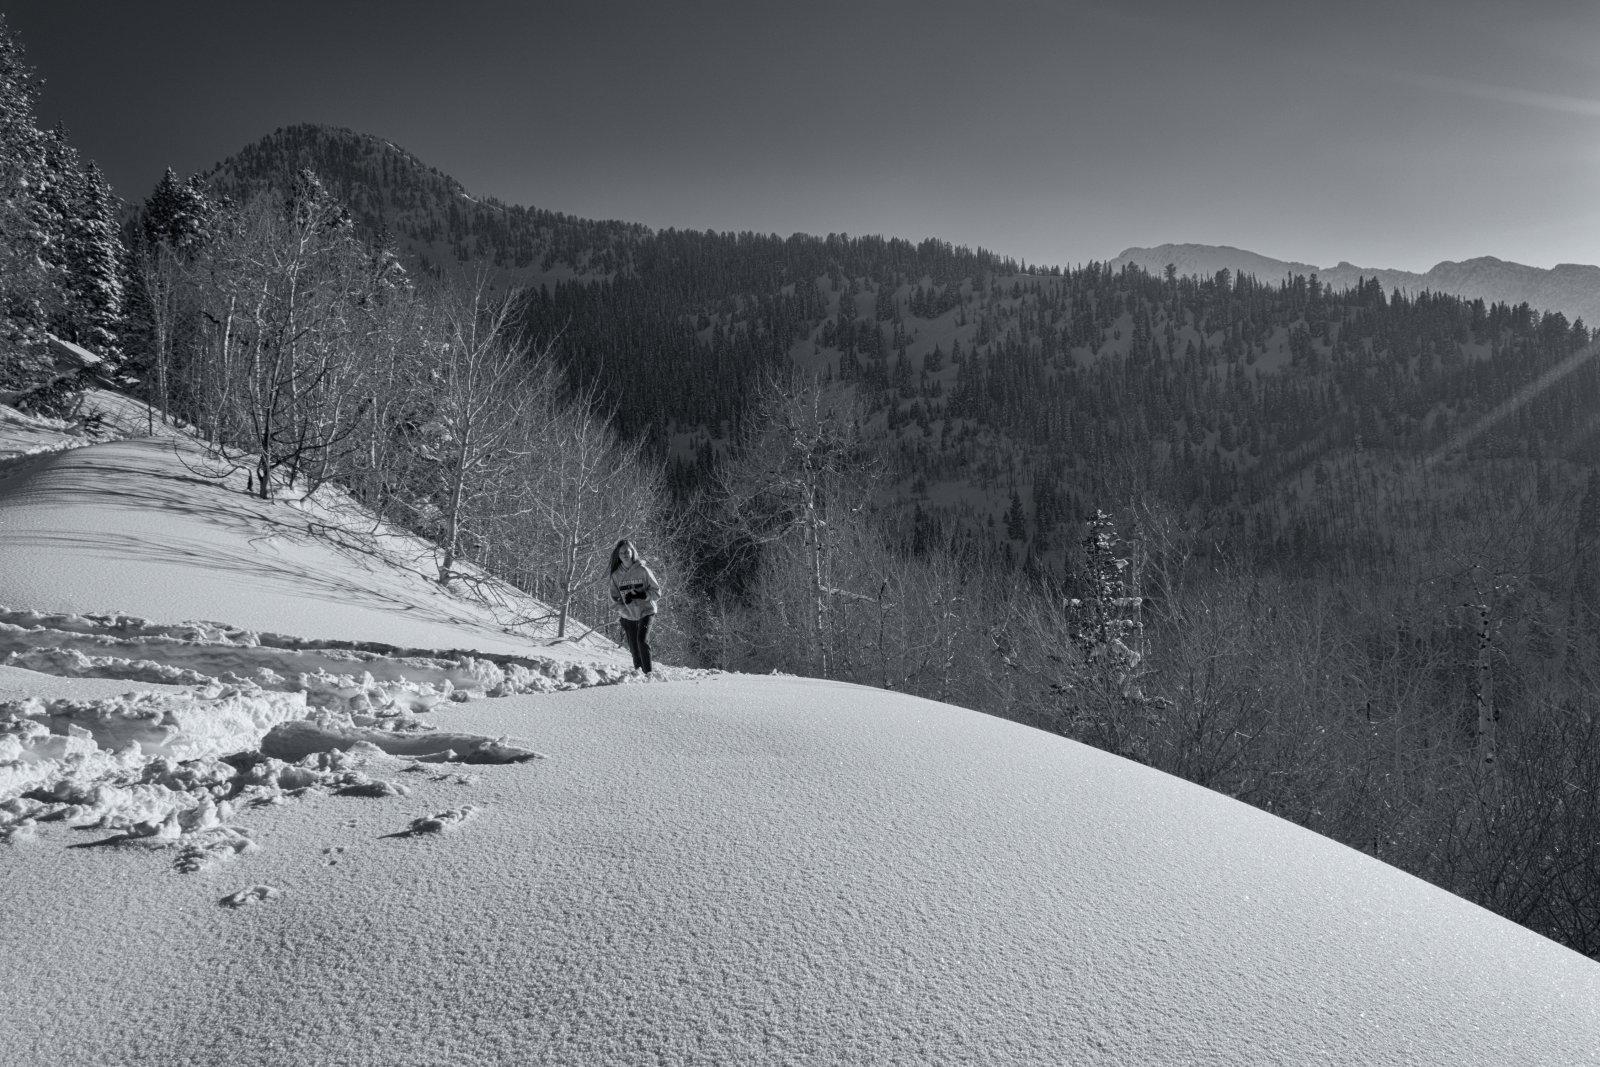 Snowshoeing With Ade0111-sm-bw.jpg